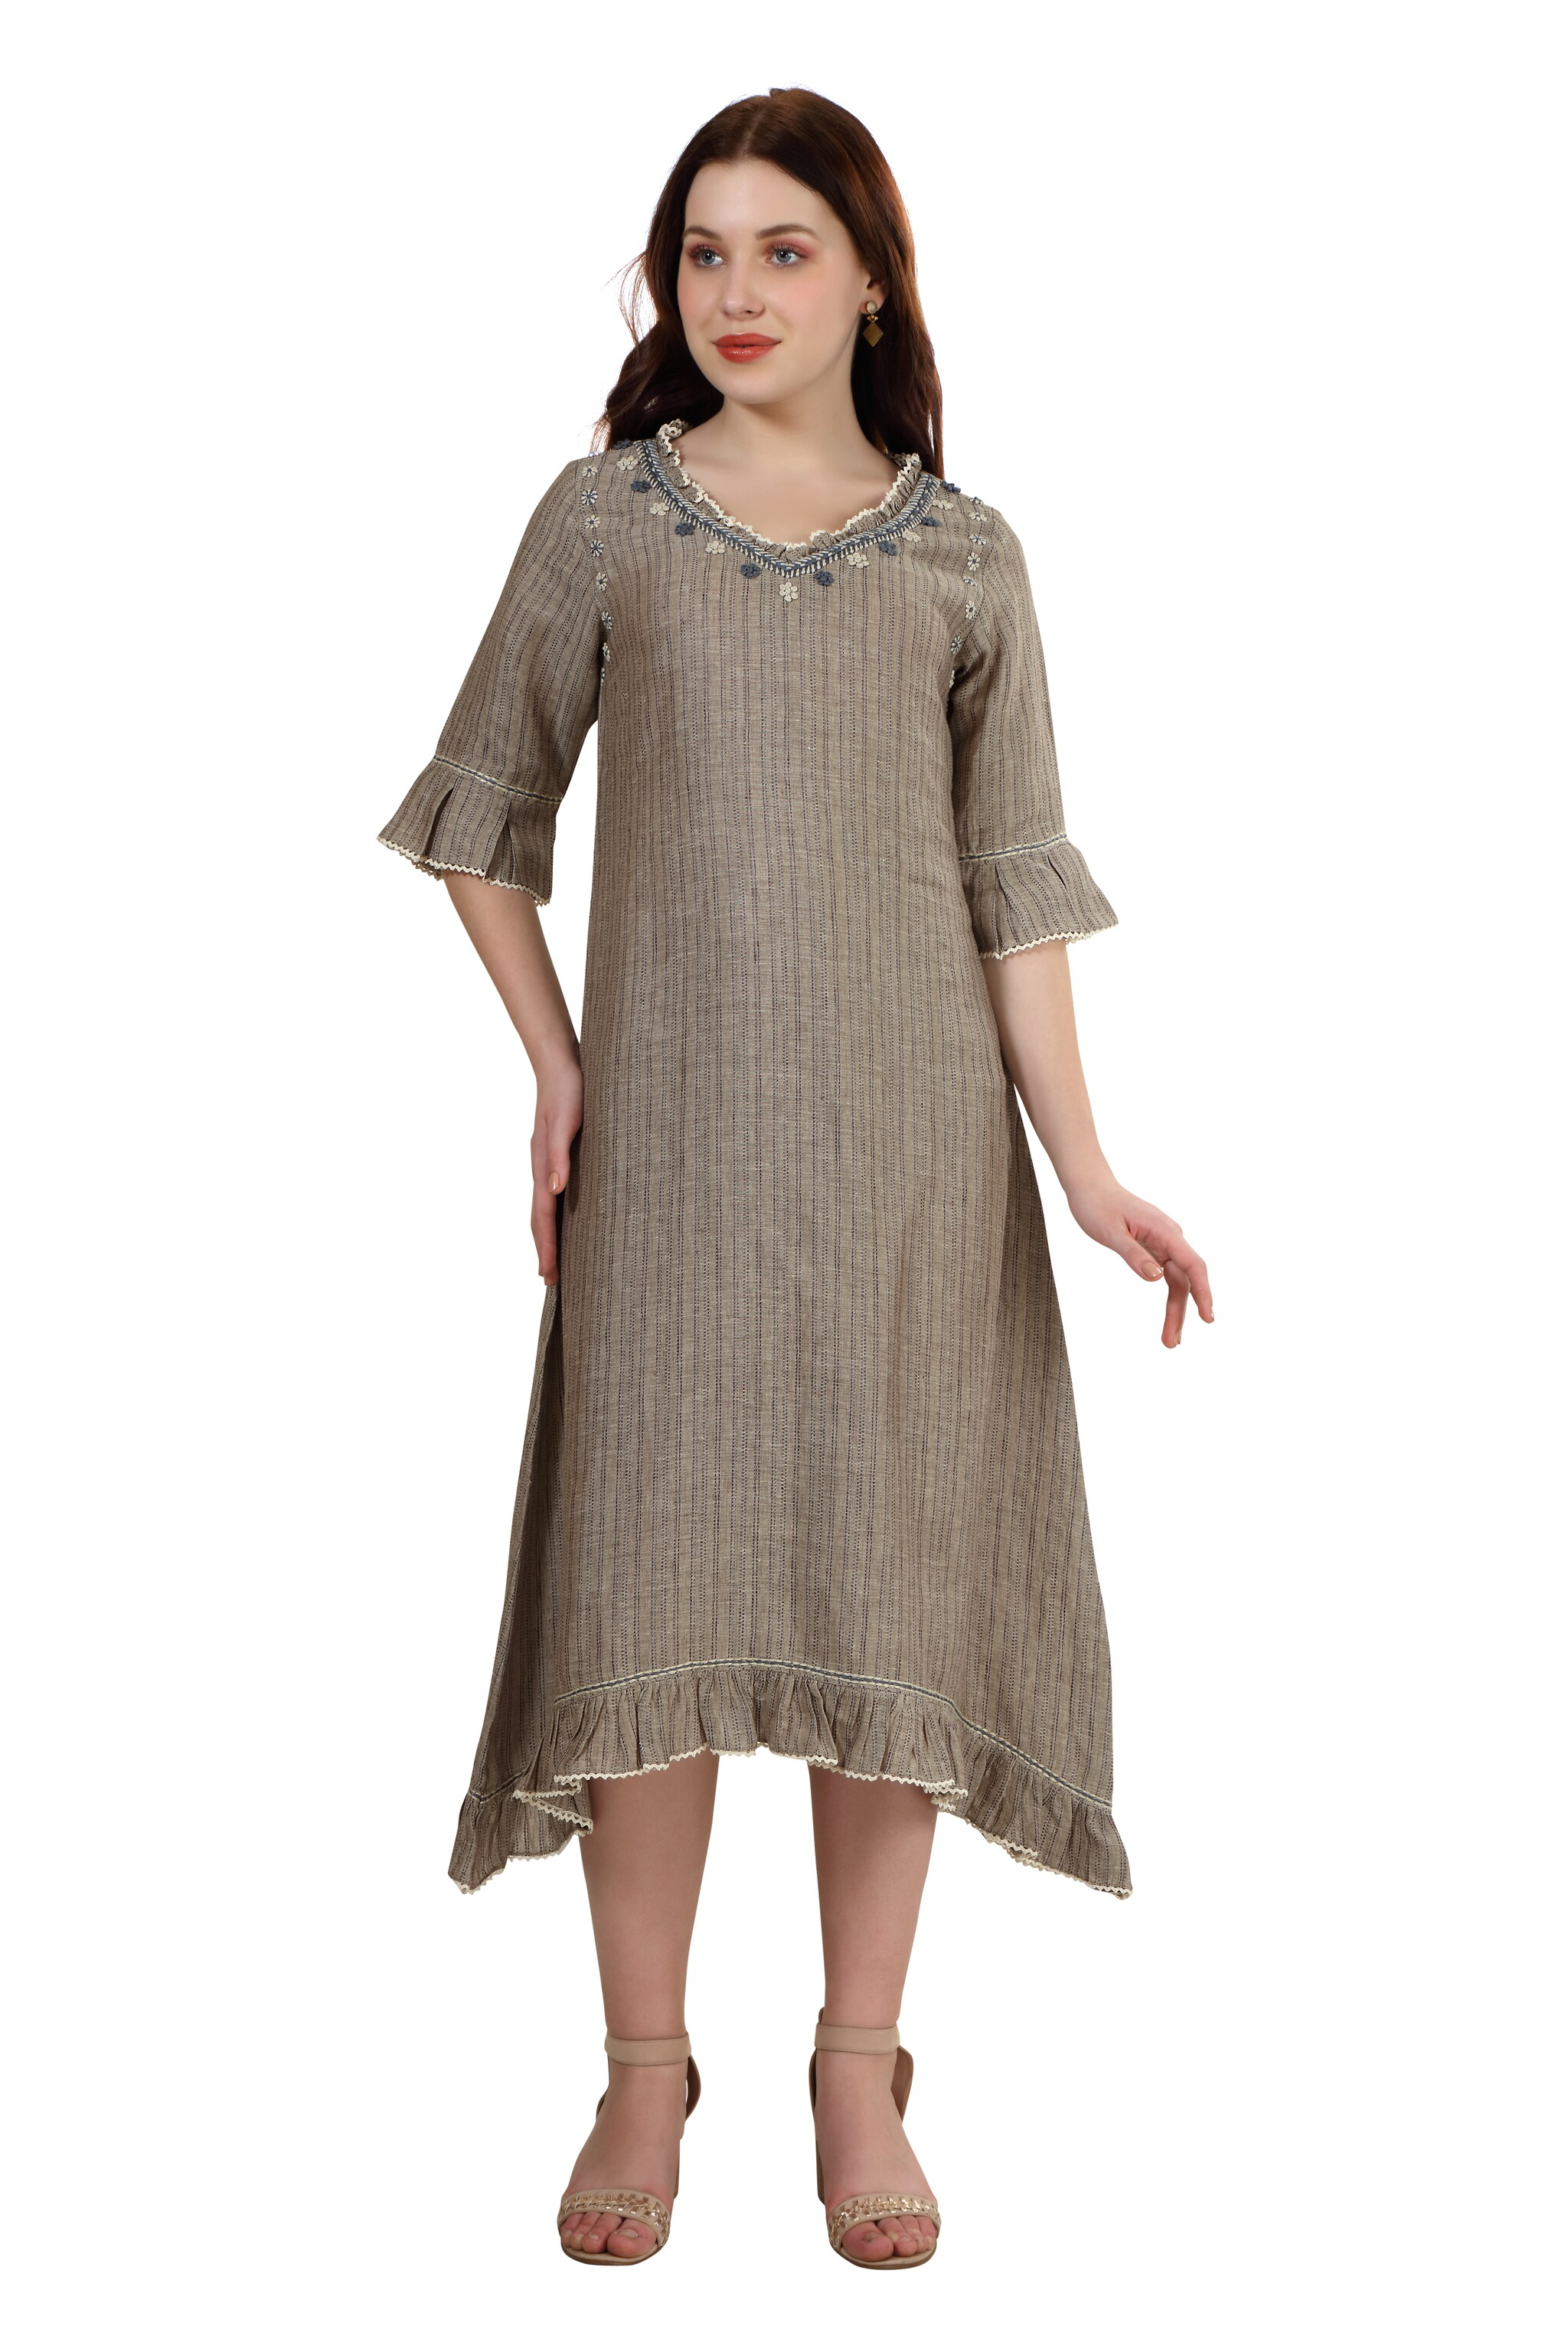 202013 Dark Natural Asymmetrical Linen Dress (XS,Dark Natural)